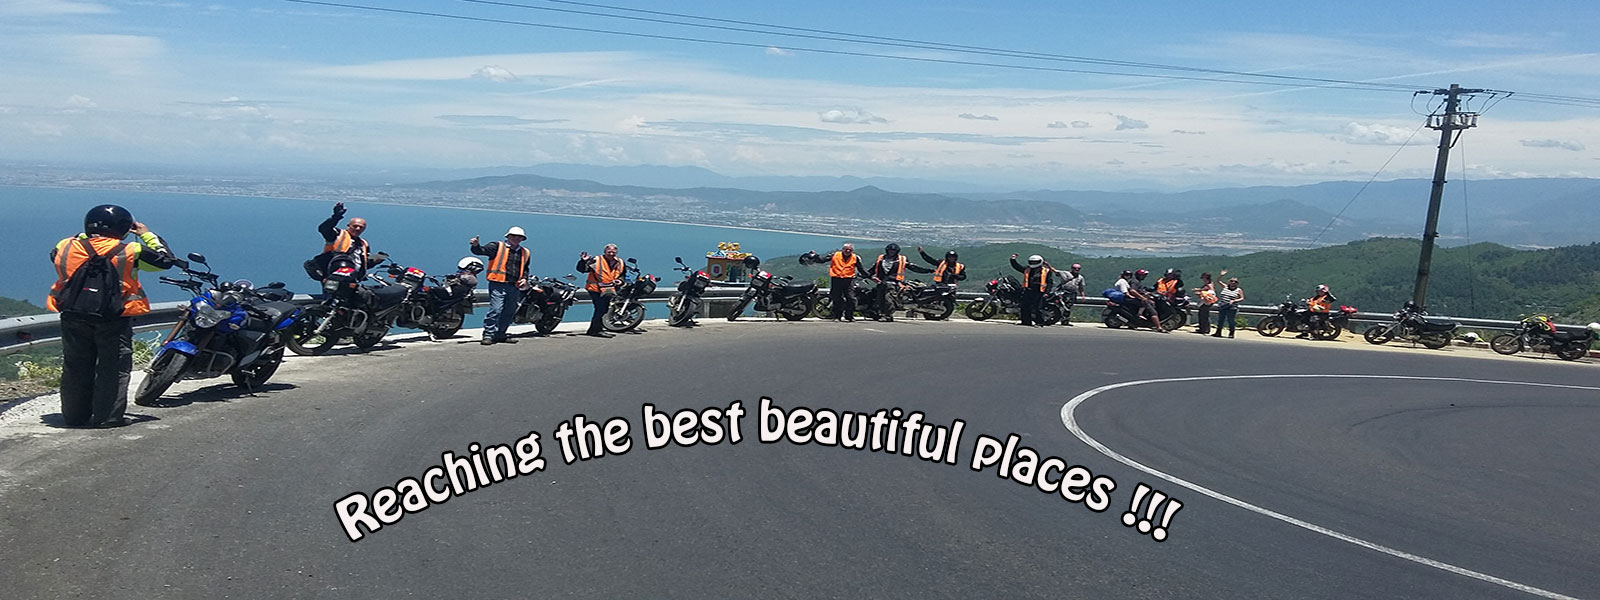 Reaching the best beautiful places in Vietnam